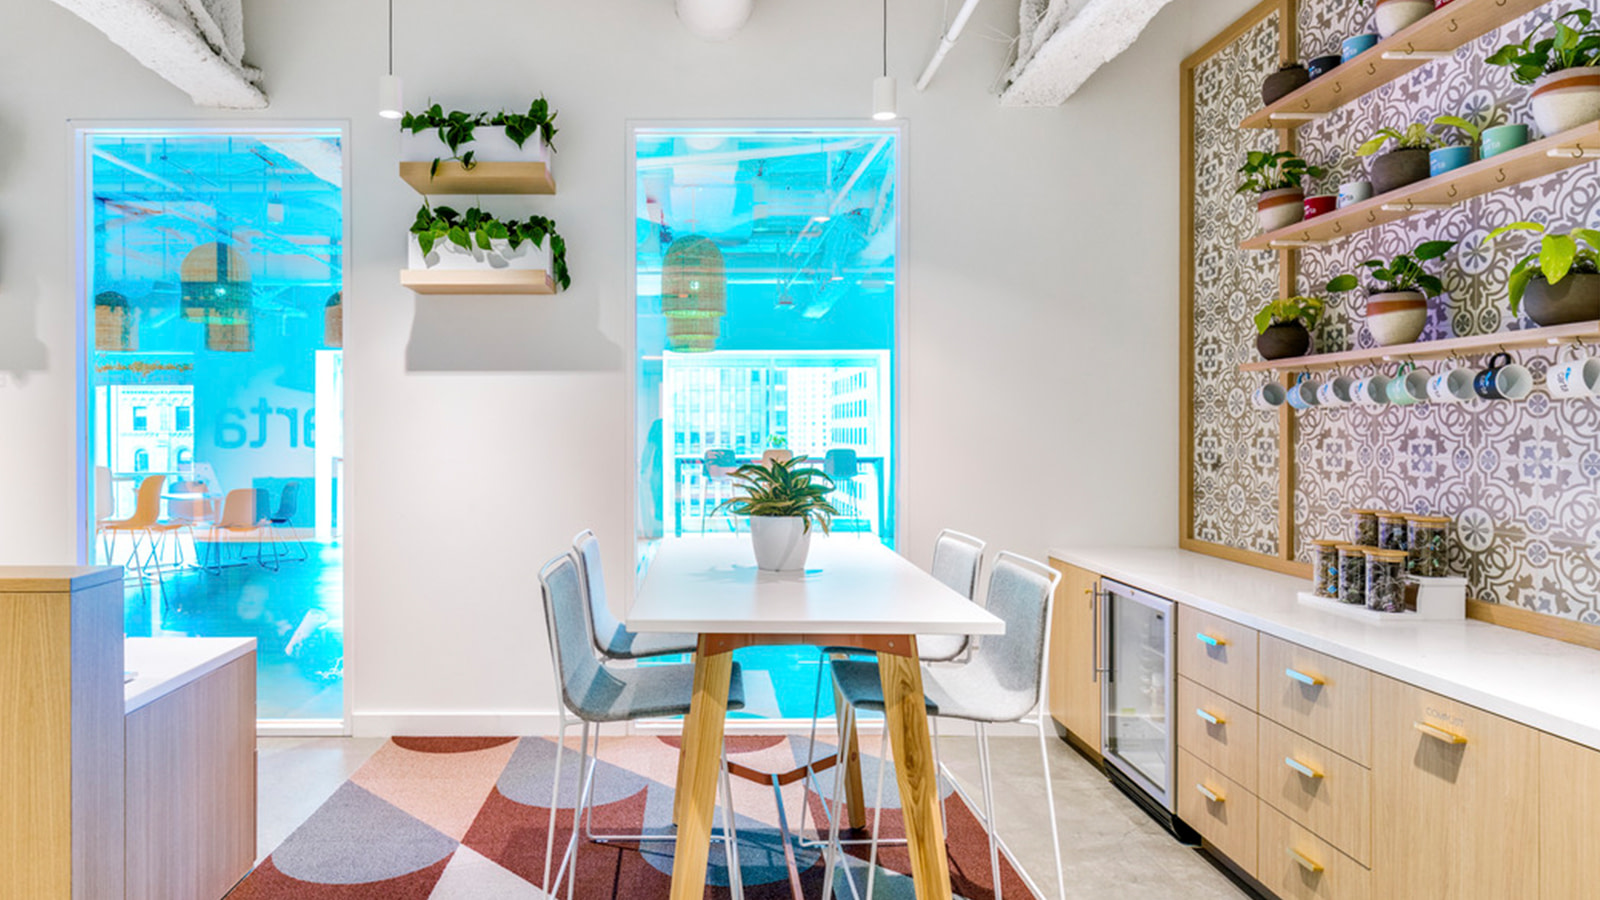 The Cafe Area at Carta's SF Headquarters